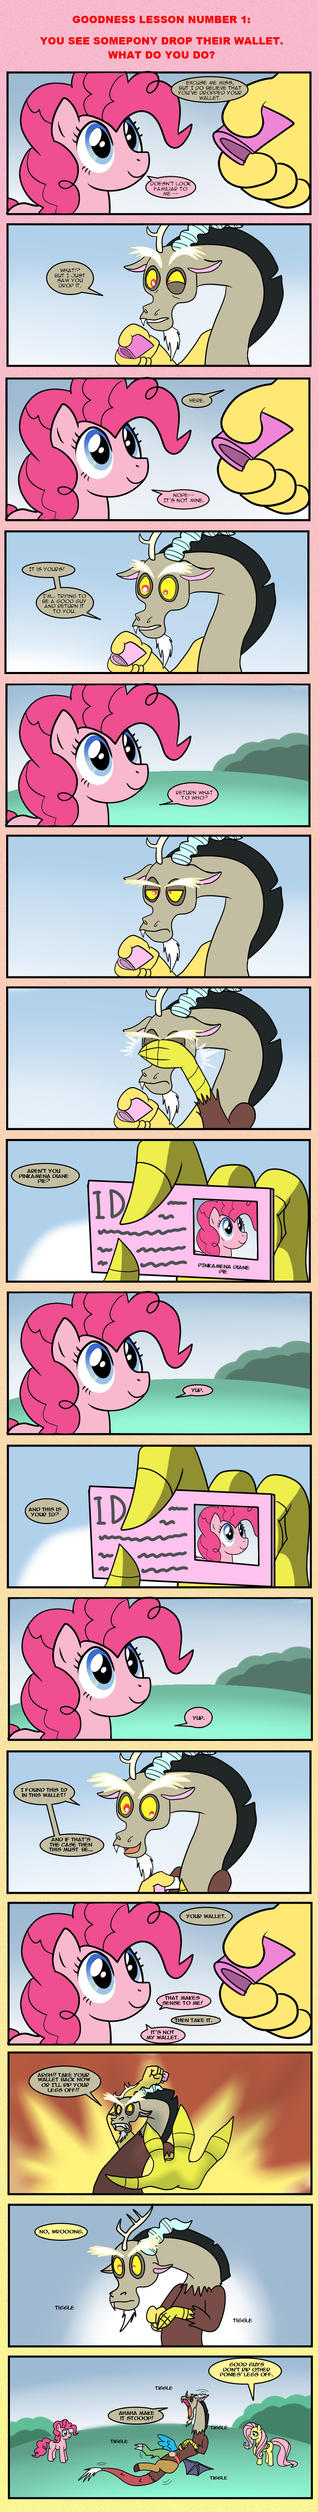 It's not my wallet by Edowaado